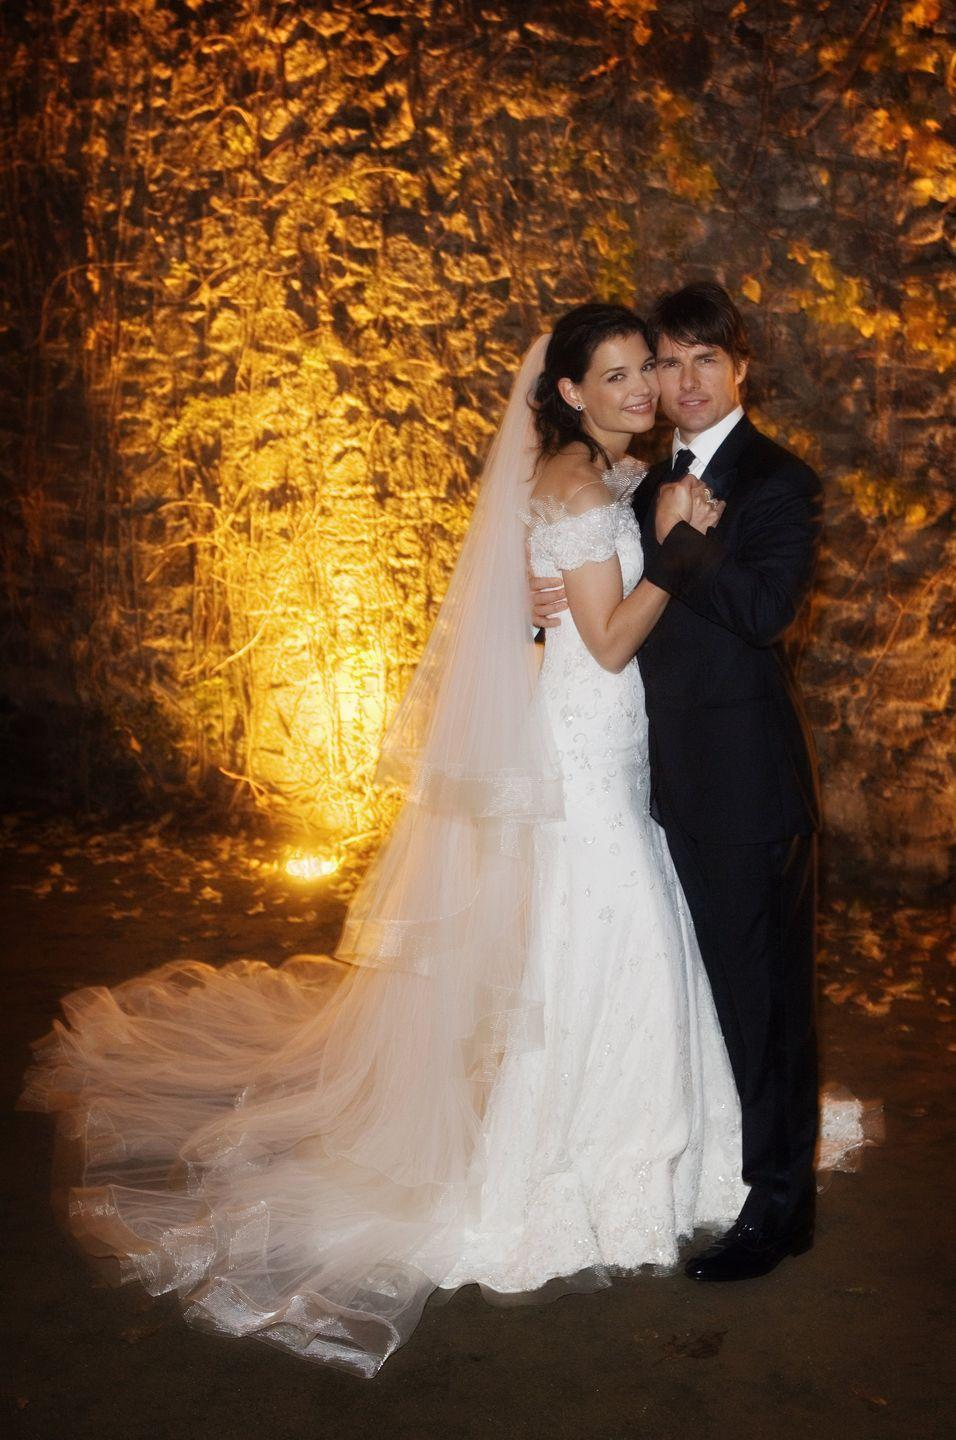 "<p>On November 18, Tom Cruise and Katie Holmes threw a $3.5 million wedding at Castello Odescalchi in Bracciano, near Rome, Italy. The lavish wedding topped off a seriously dramatic courtship: The couple had been dating only about two months before they married, and one month before the wedding, Cruise jumped for joy over his love for Holmes on Oprah's couch in one of his most famous interviews. Katie divorced Tom in 2012, allegedly due to his involvement in Scientology, and took primary custody of their daughter, <a href=""https://www.goodhousekeeping.com/life/news/a43380/suri-cruise-looks-like-katie-holmes-mini-me-new-photo/"" rel=""nofollow noopener"" target=""_blank"" data-ylk=""slk:Suri"" class=""link rapid-noclick-resp"">Suri</a>.</p>"